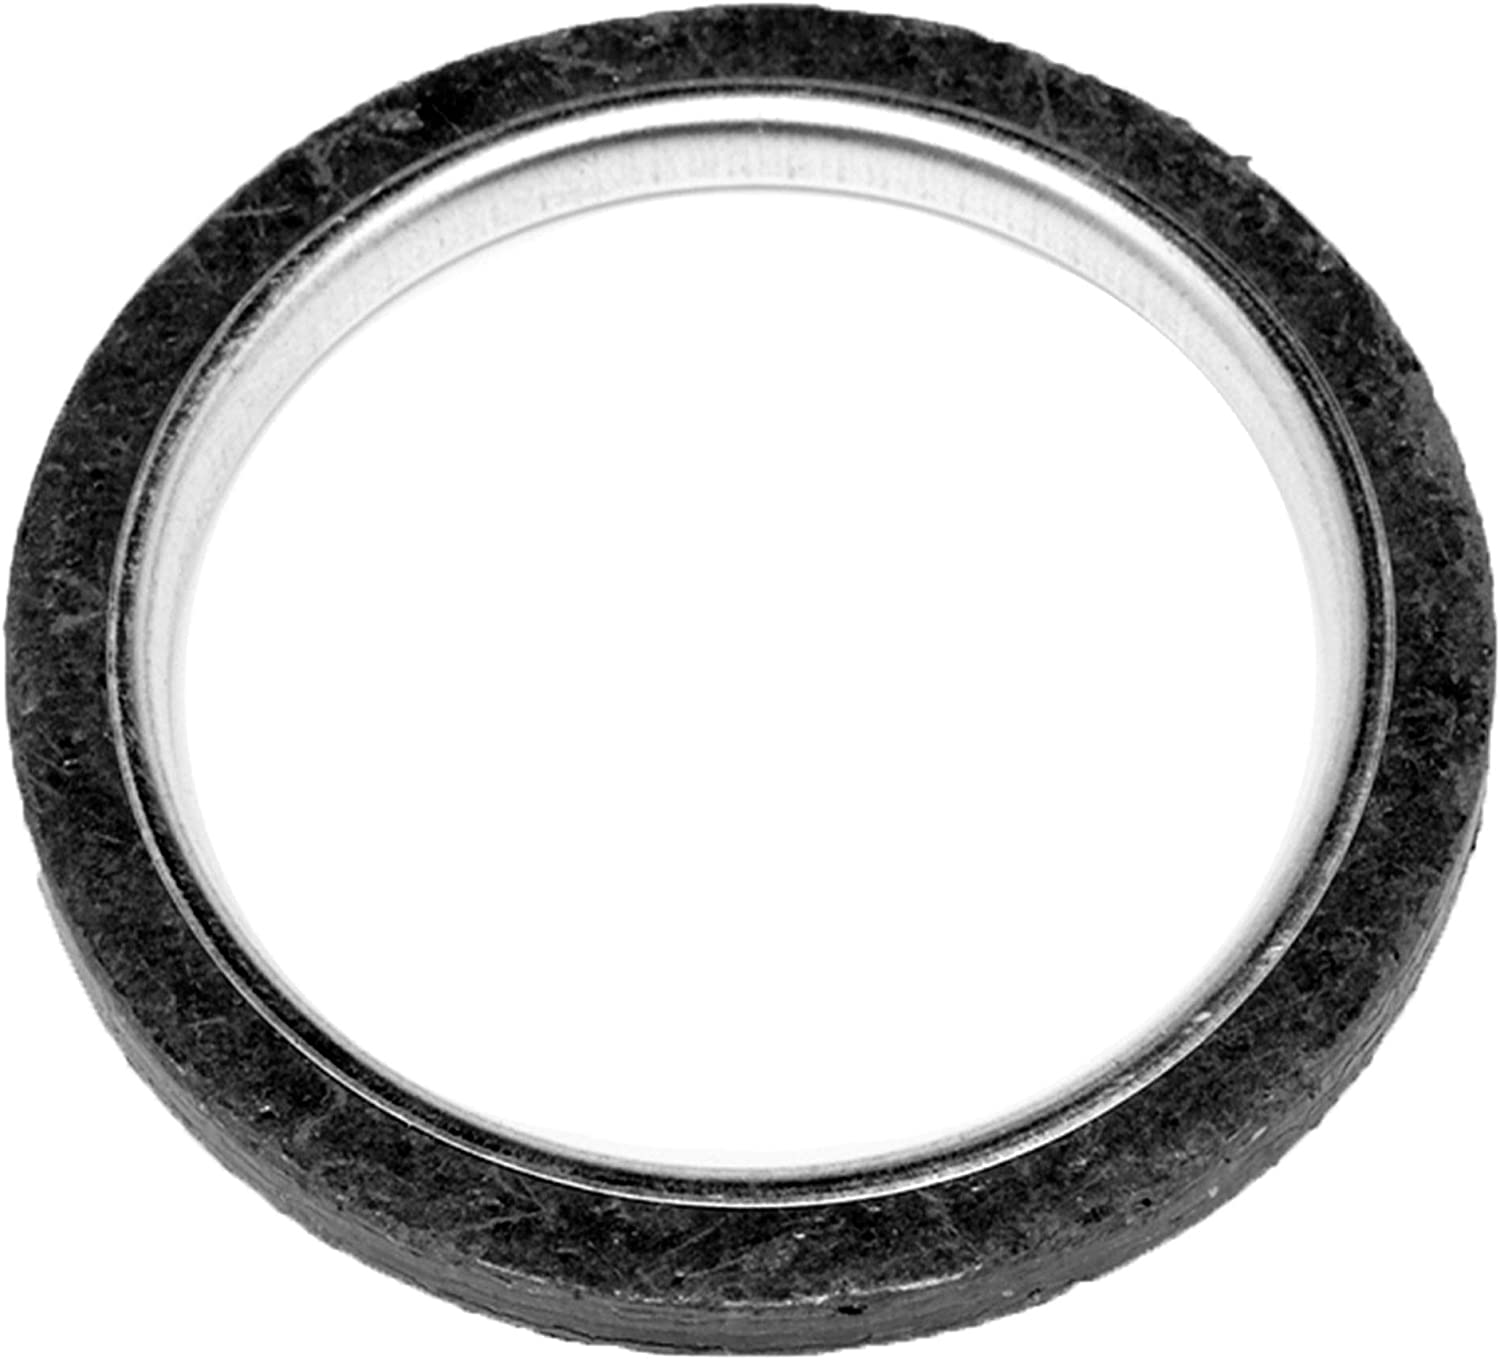 Walker Exhaust Max 77% OFF Limited time for free shipping 31584 Pipe Flange Gasket